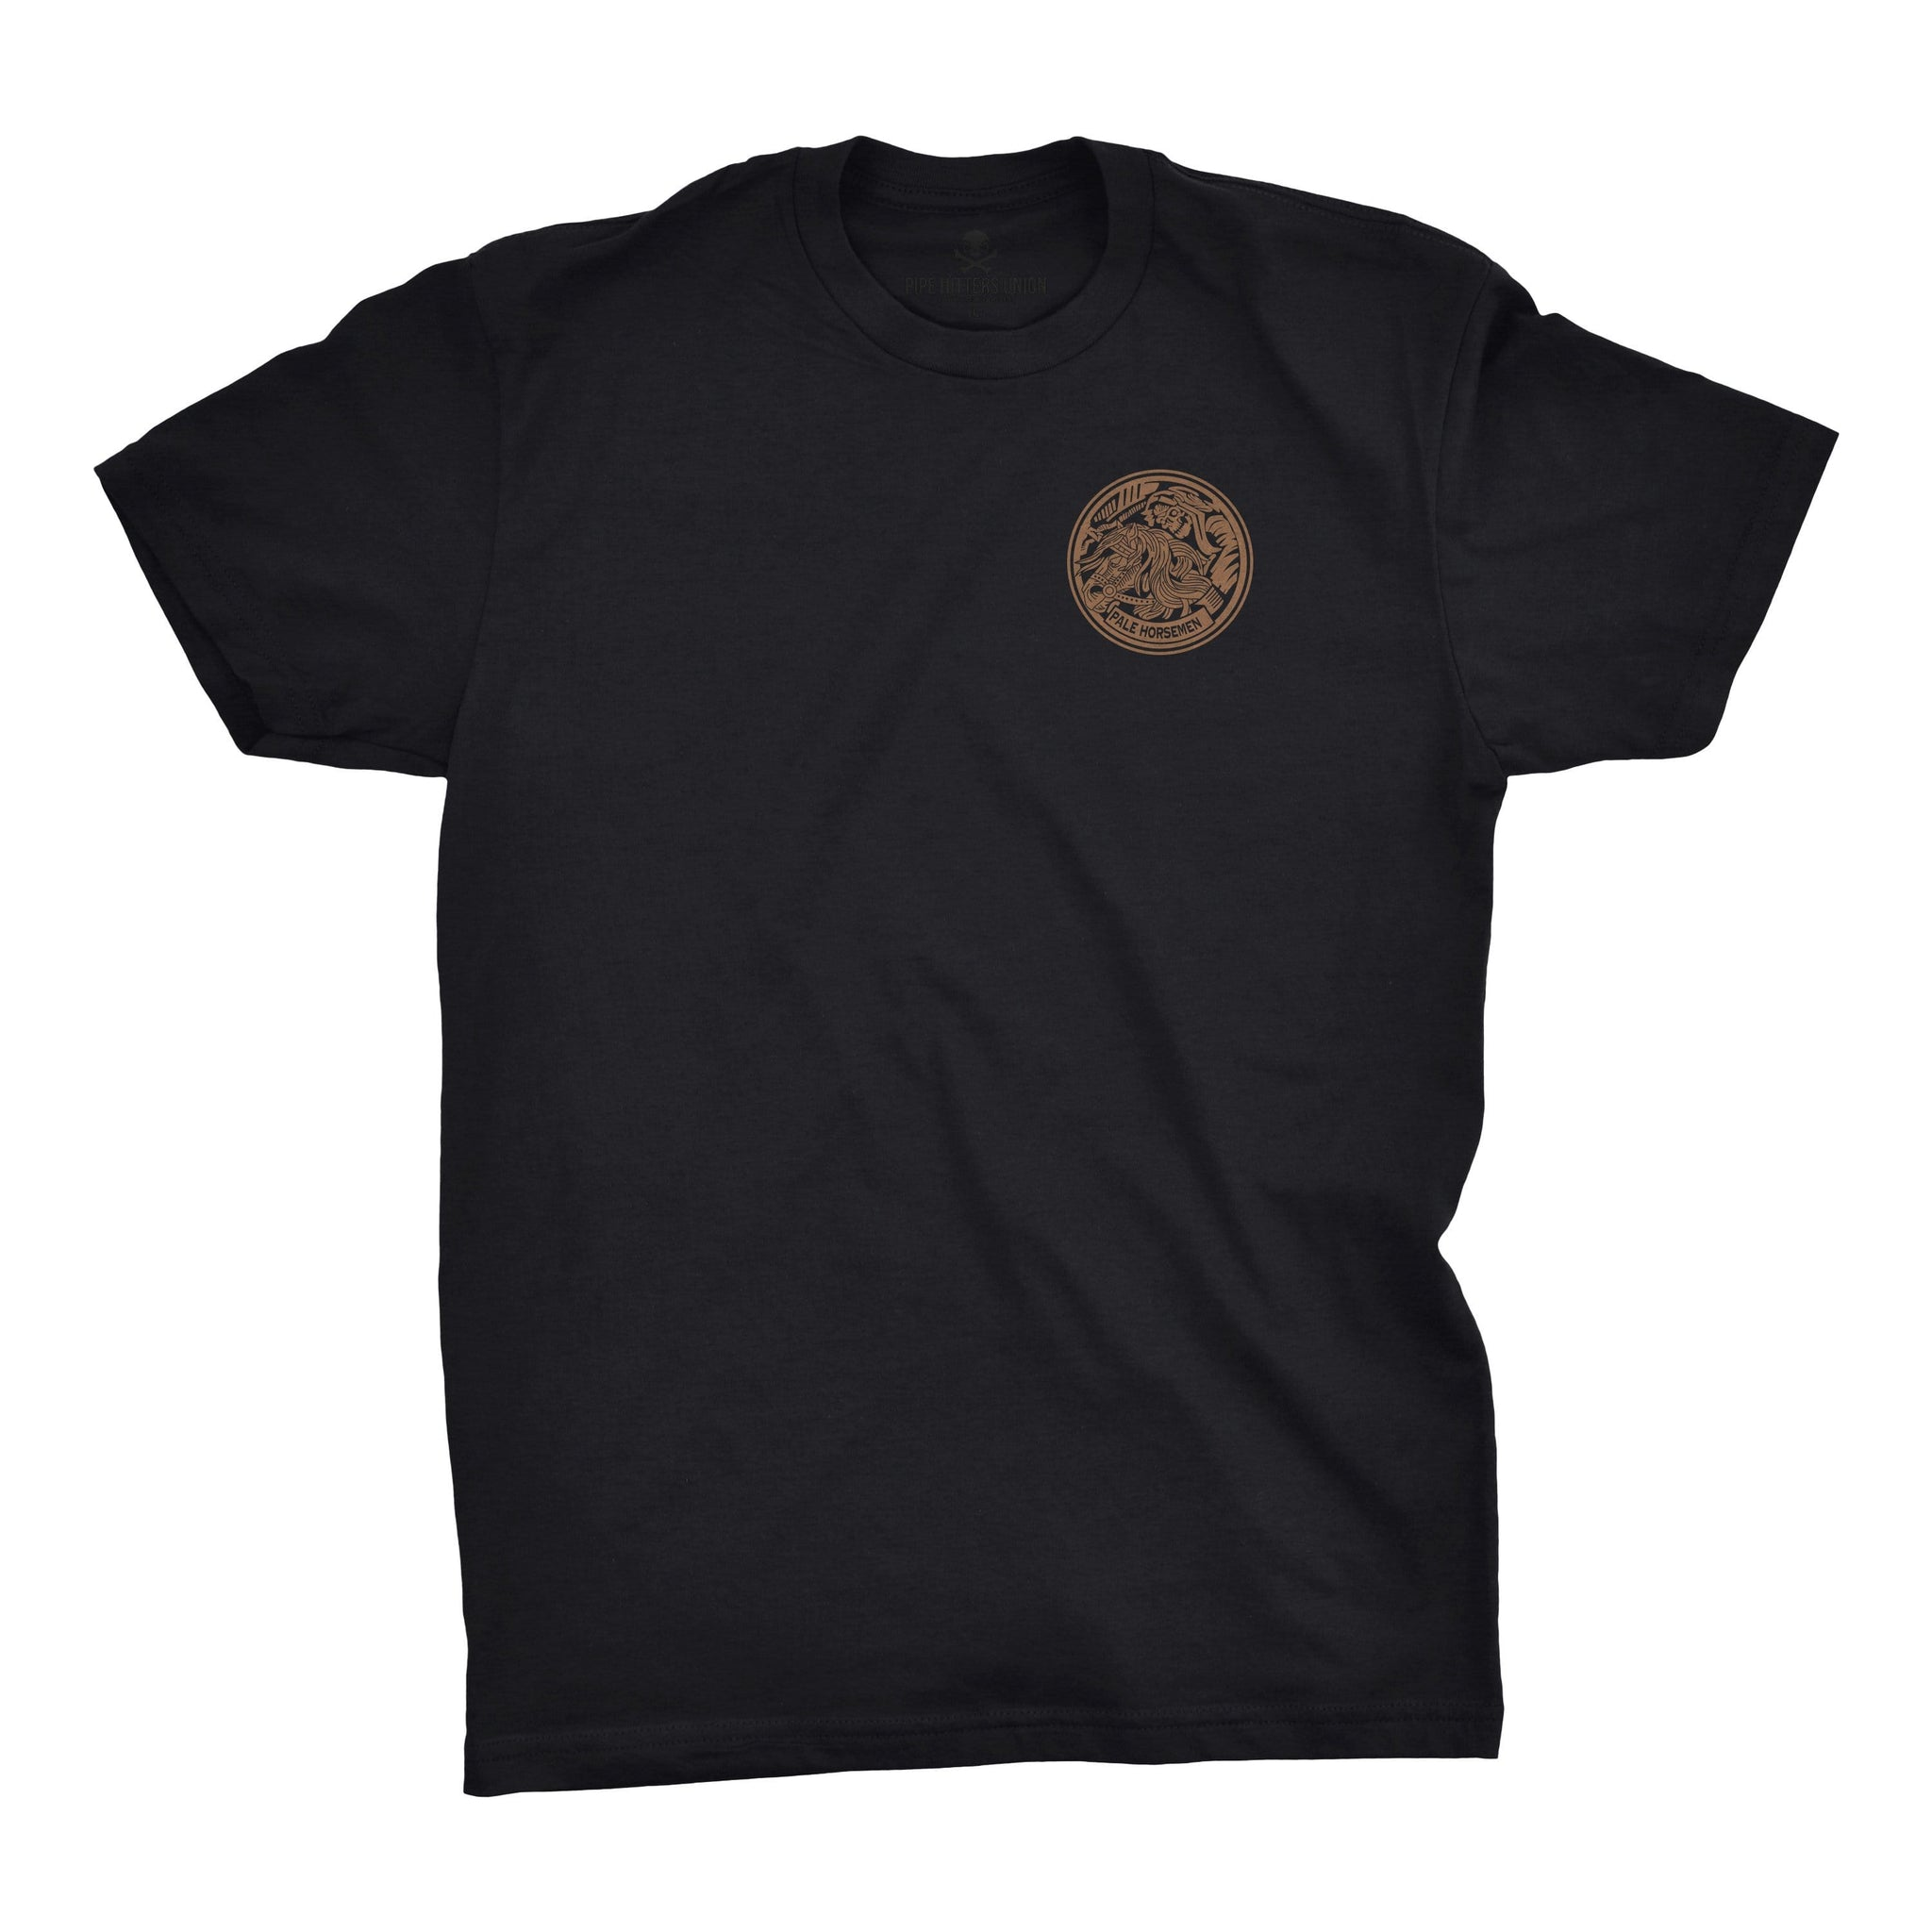 PHUMC Pale Horsemen Chapter Tee - Black - T-Shirts - Pipe Hitters Union